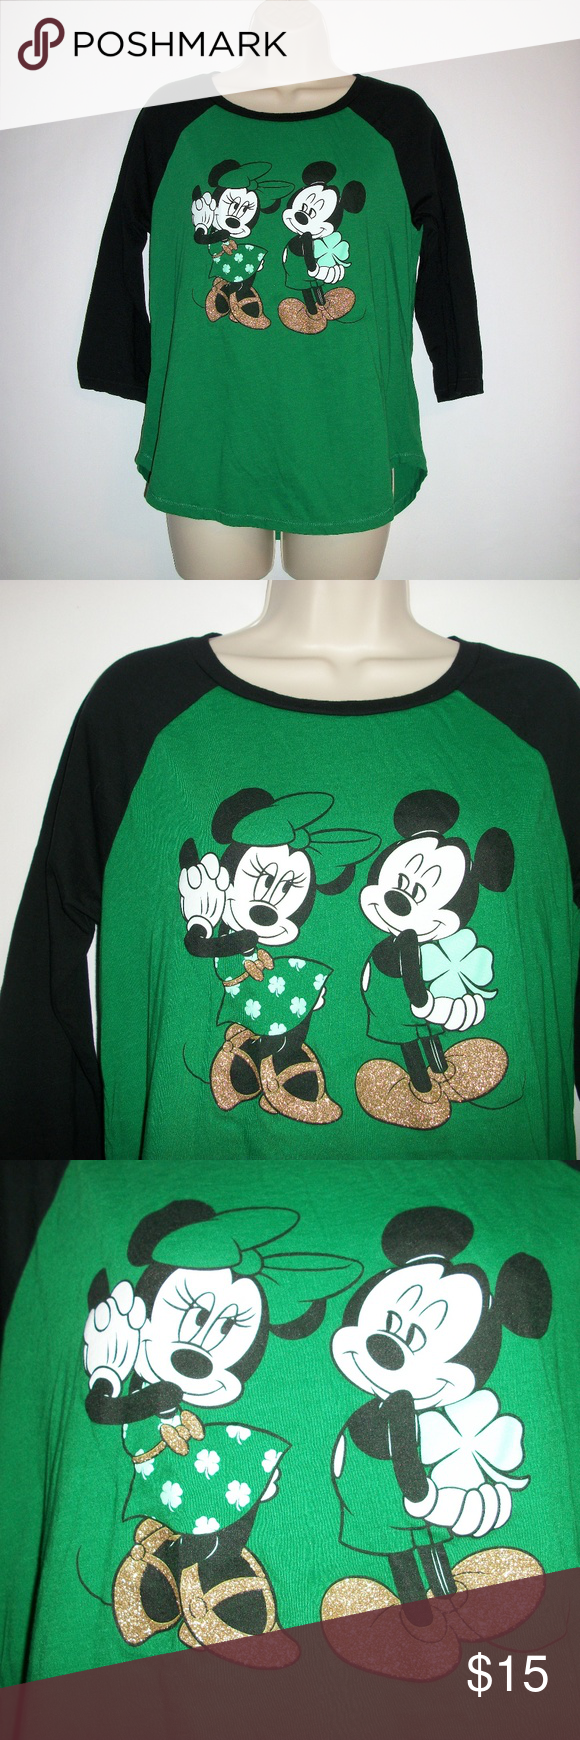 aa232af79 Cute Mickey and Minni St.Patricks Day Baseball Tee Disney Womens size Large  Mickey & Minnie Mouse St.Patricks Day Baseball T-shirt This sweet shirt  pictures ...